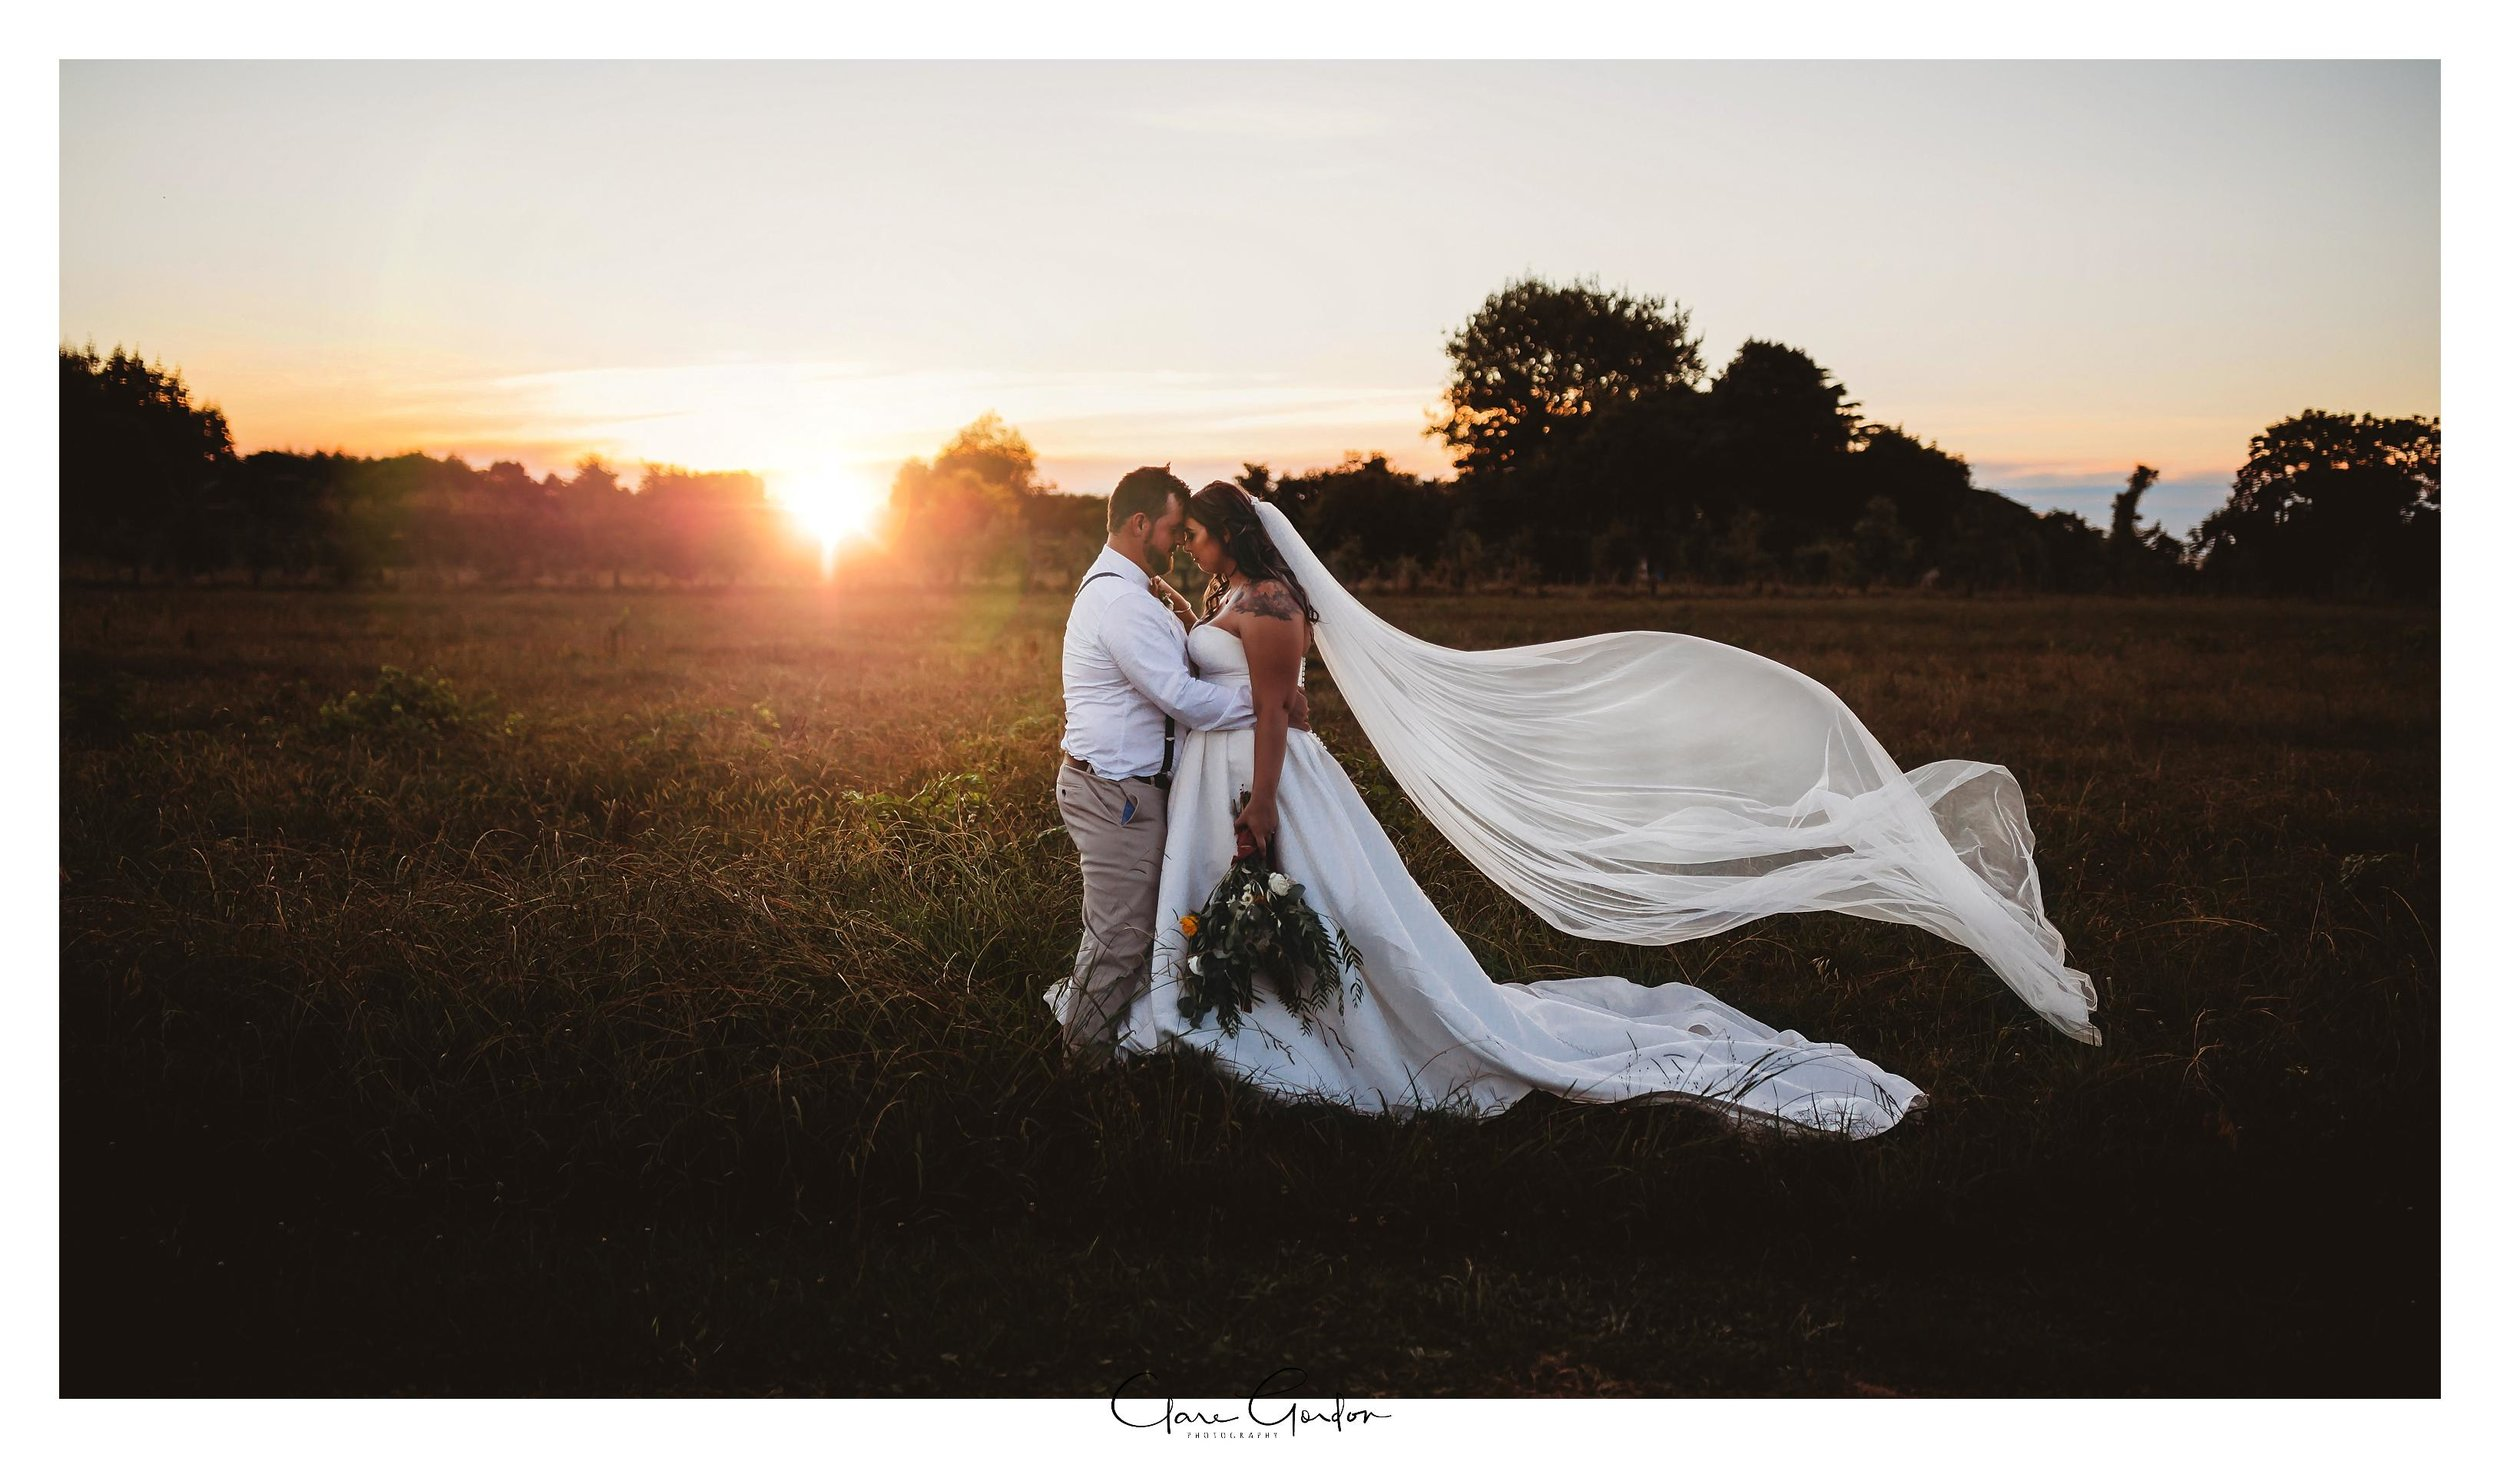 Bride-and-groom-at-sunset-coopers-function-rooms-waikato-clare-gordon-photography